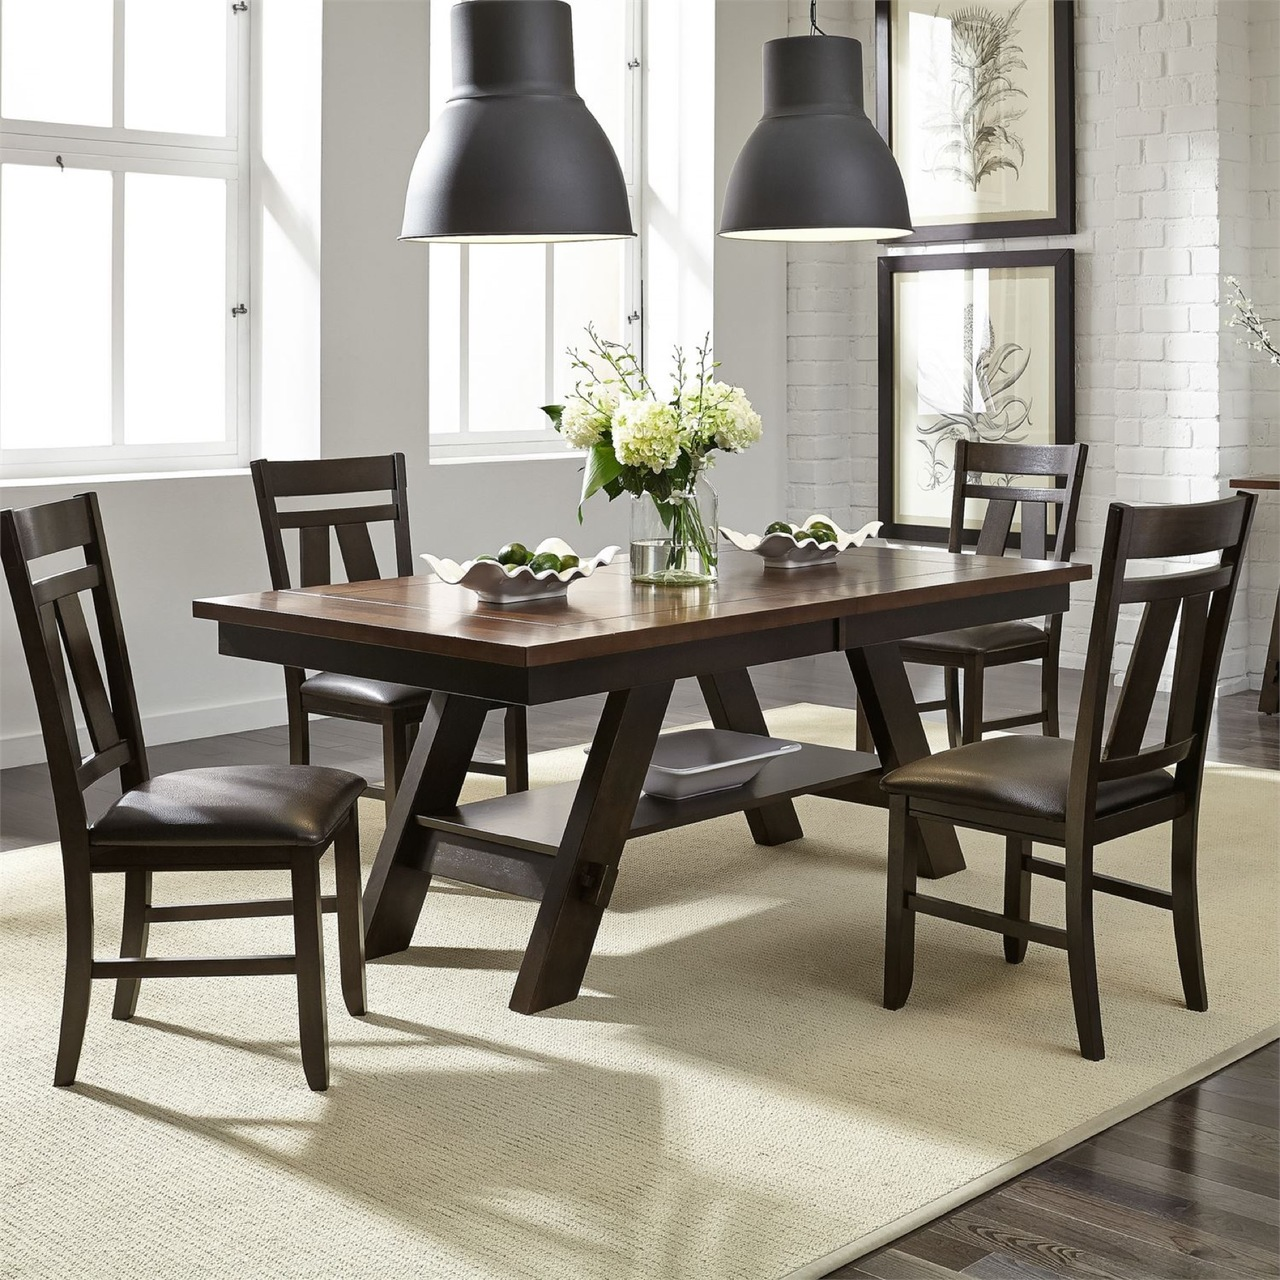 116 Pedestal Table, 4 Side Chairs, and 1 Bench $989